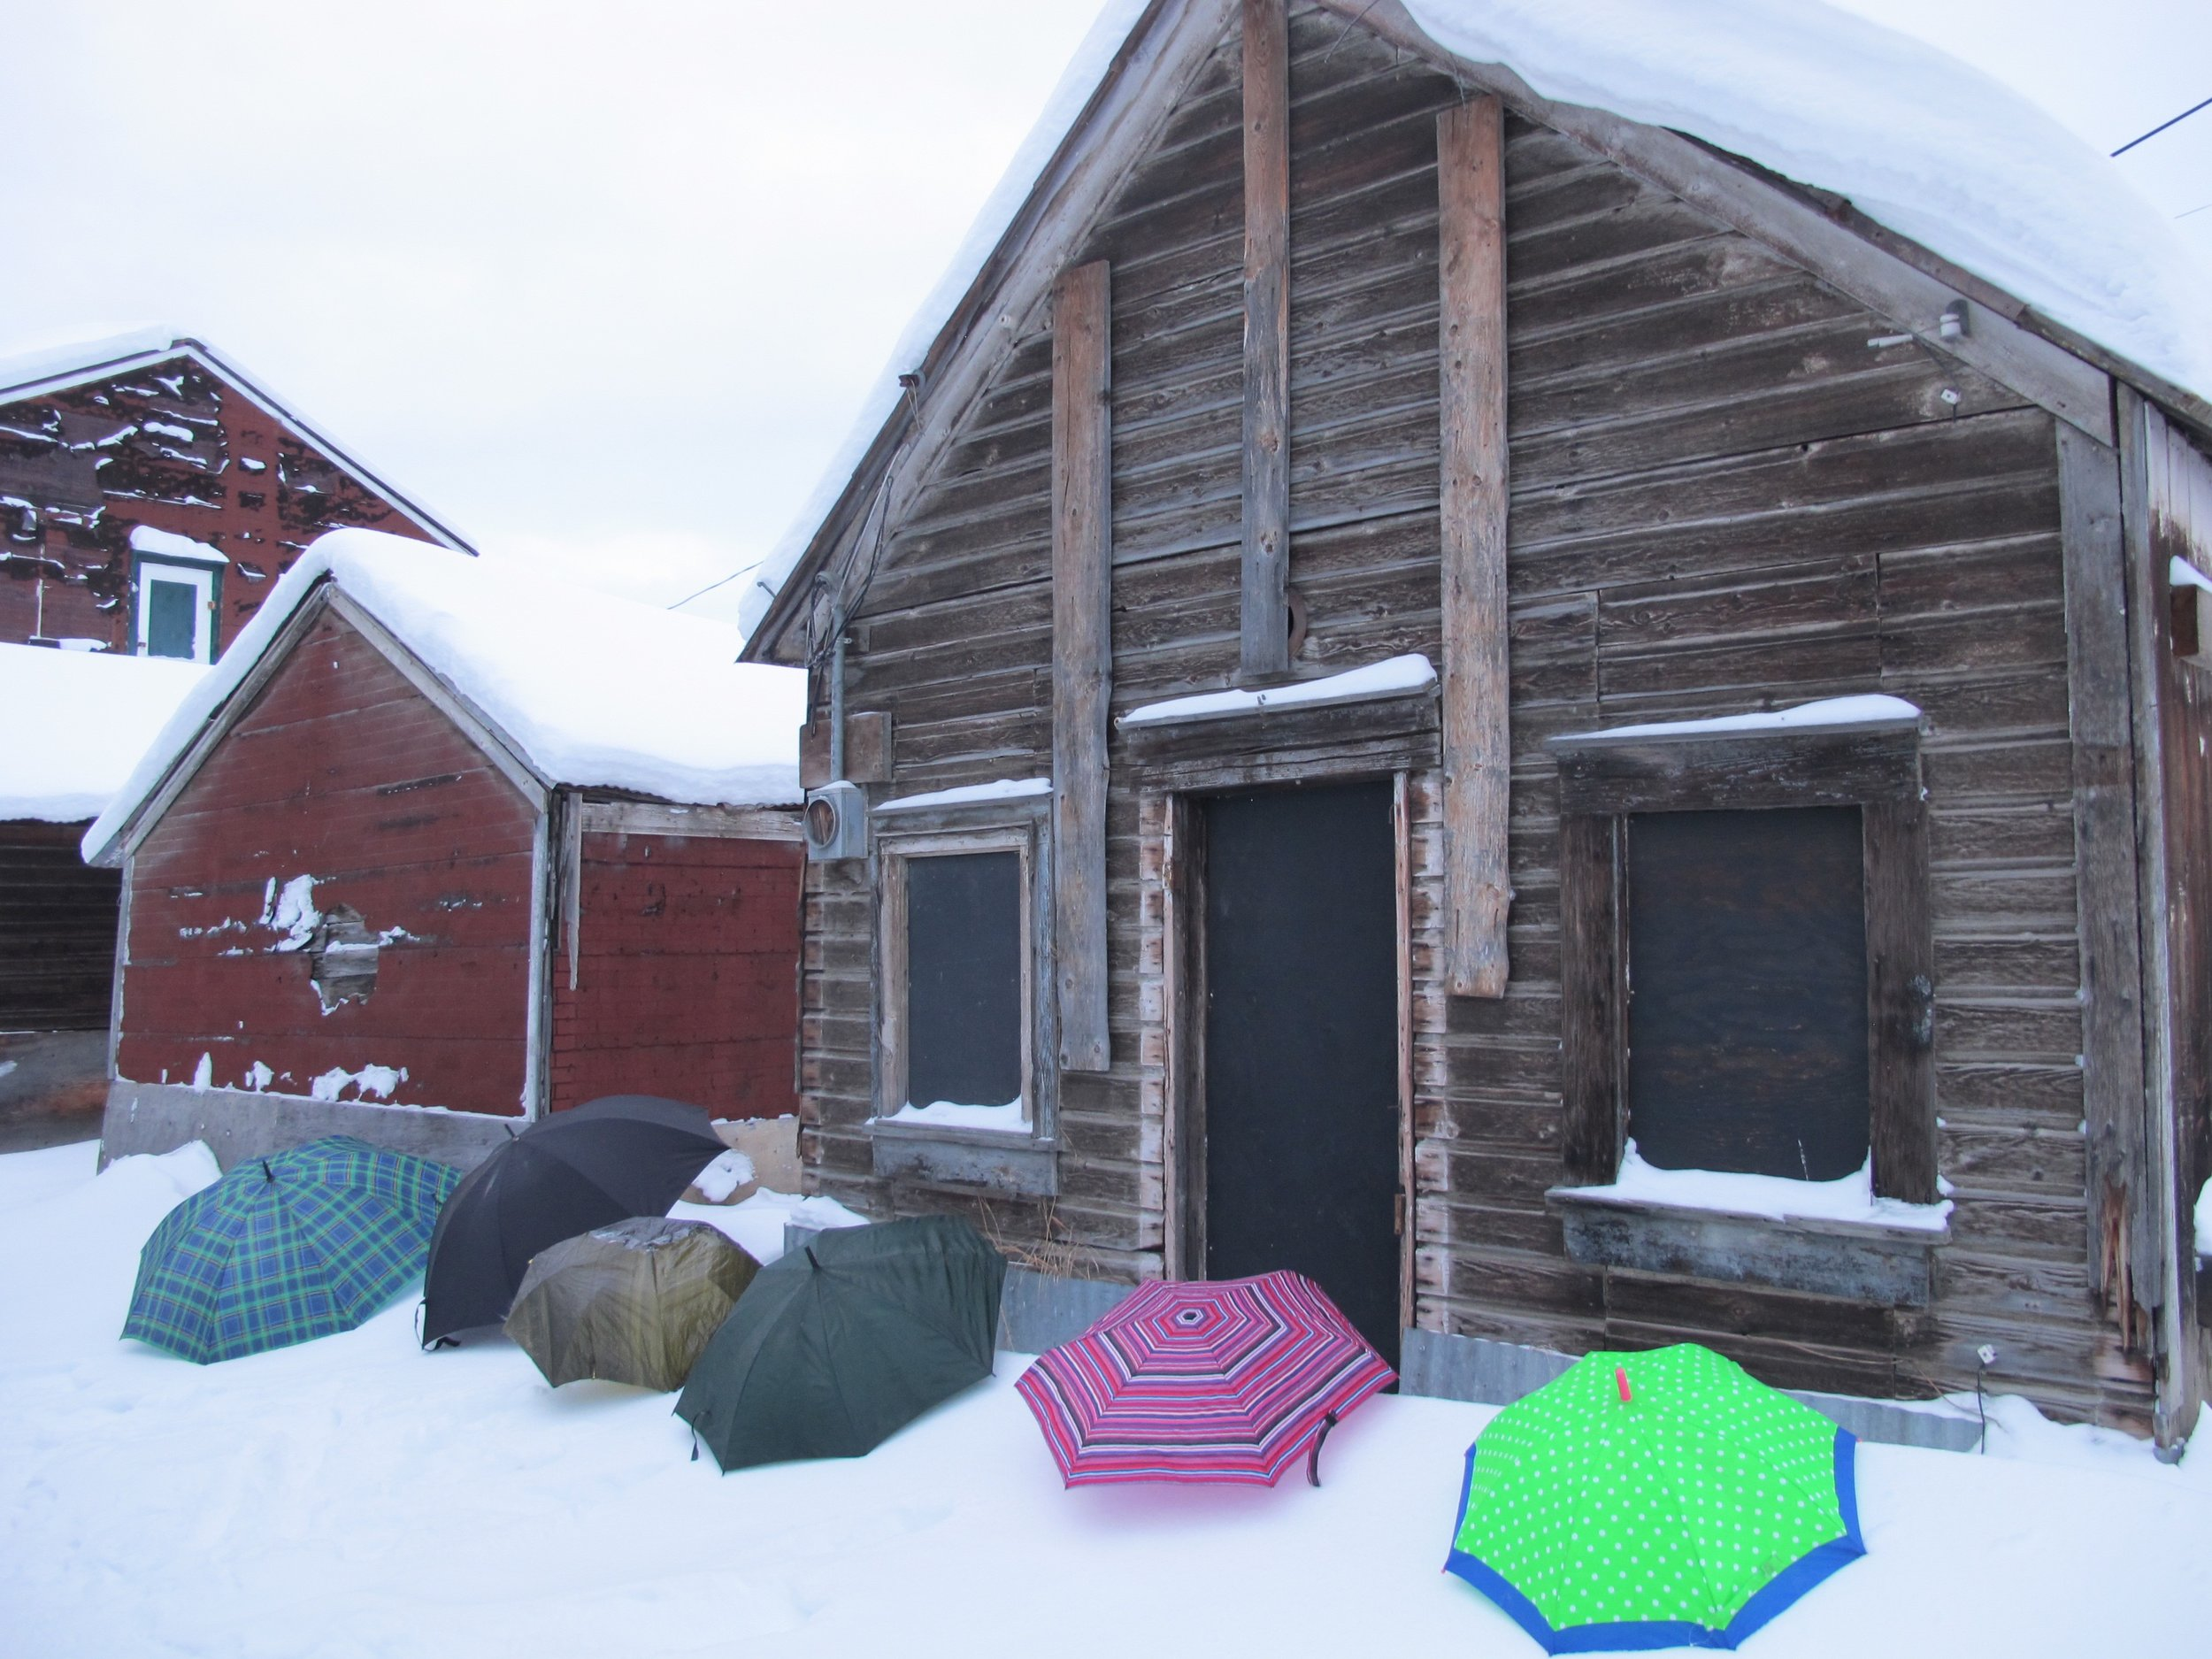 Umbrellas set up for casting with paper and ice (Dawson City, Yukon,back alley behind KIAC Klondike Institute of Art and Culture)